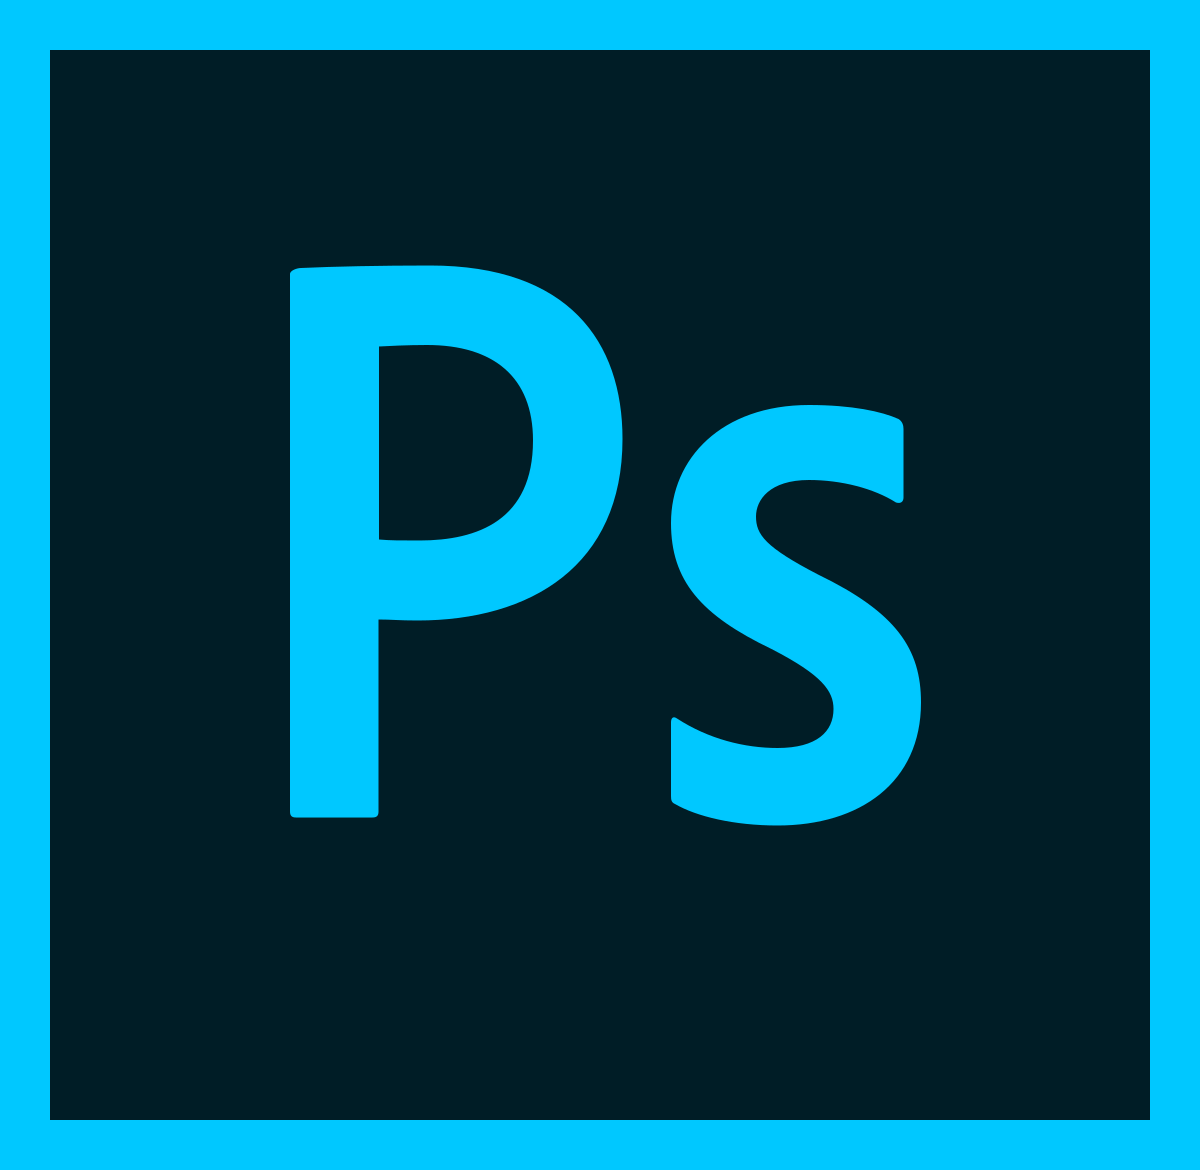 Adobe Photoshop CS6 13.01 Free Download